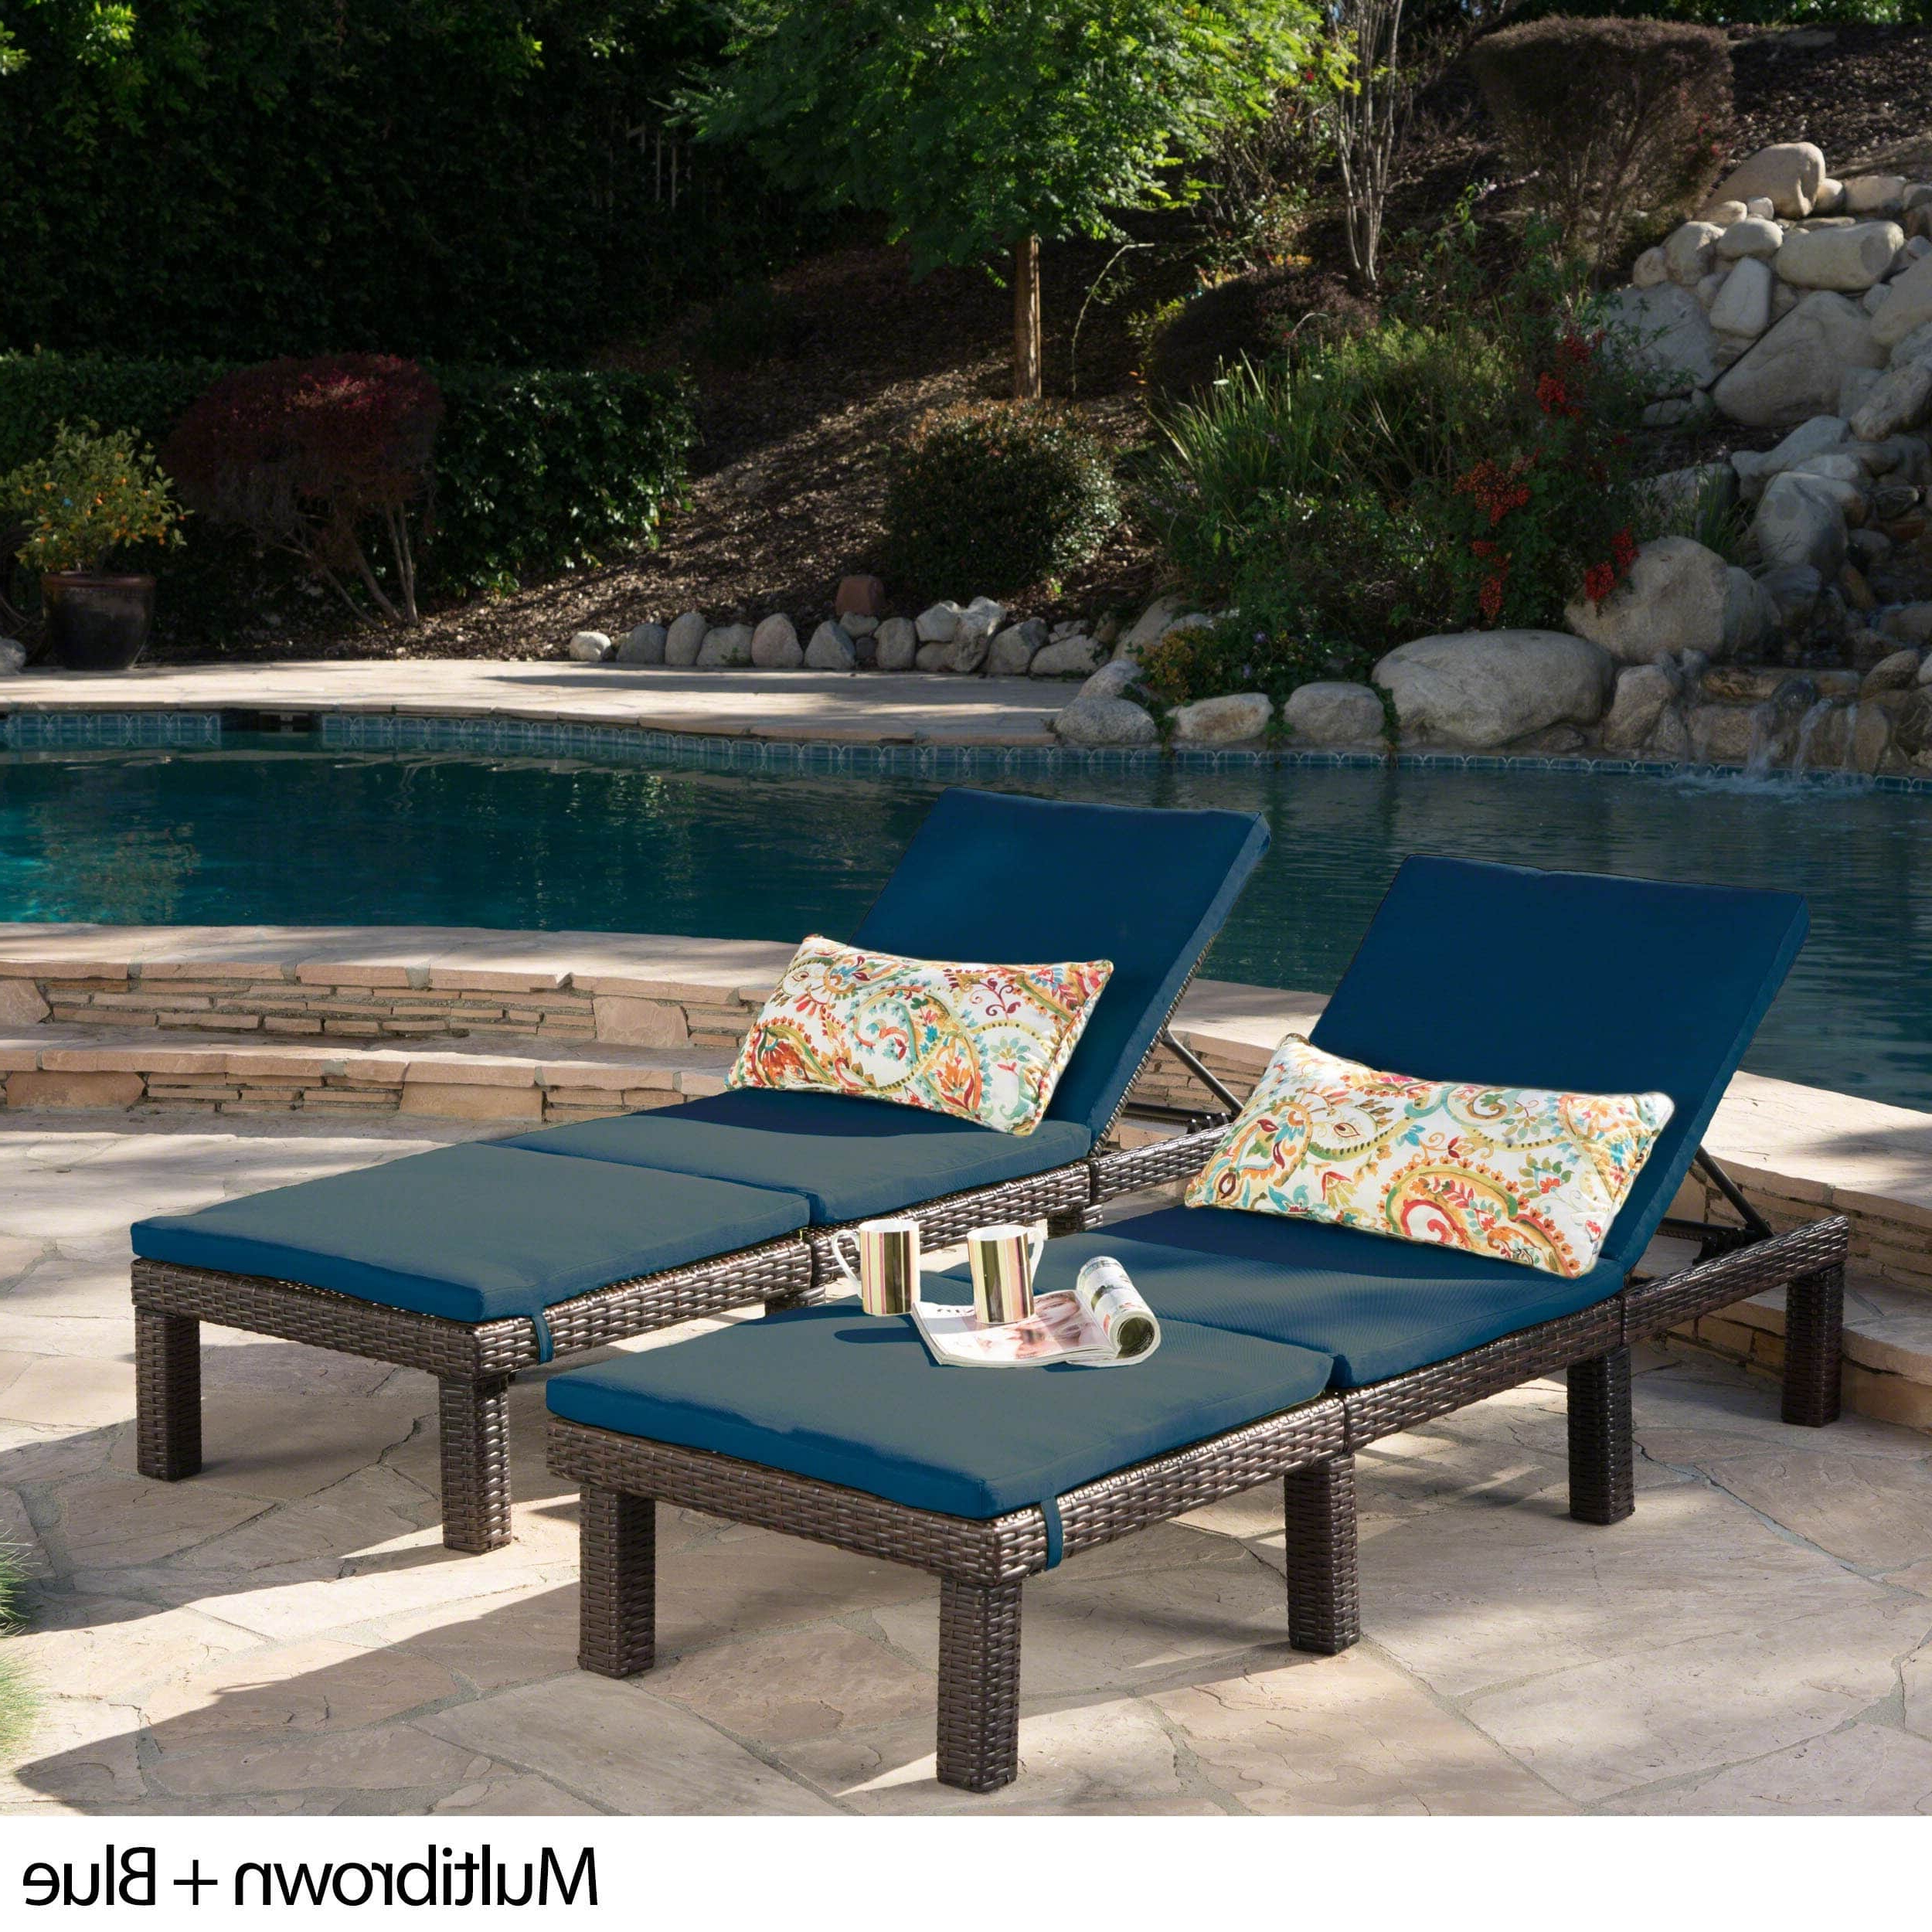 Jamaica Outdoor Chaise Lounges Regarding 2019 Jamaica Outdoor Chaise Lounge With Cushion (Set Of 2) (Gallery 8 of 25)